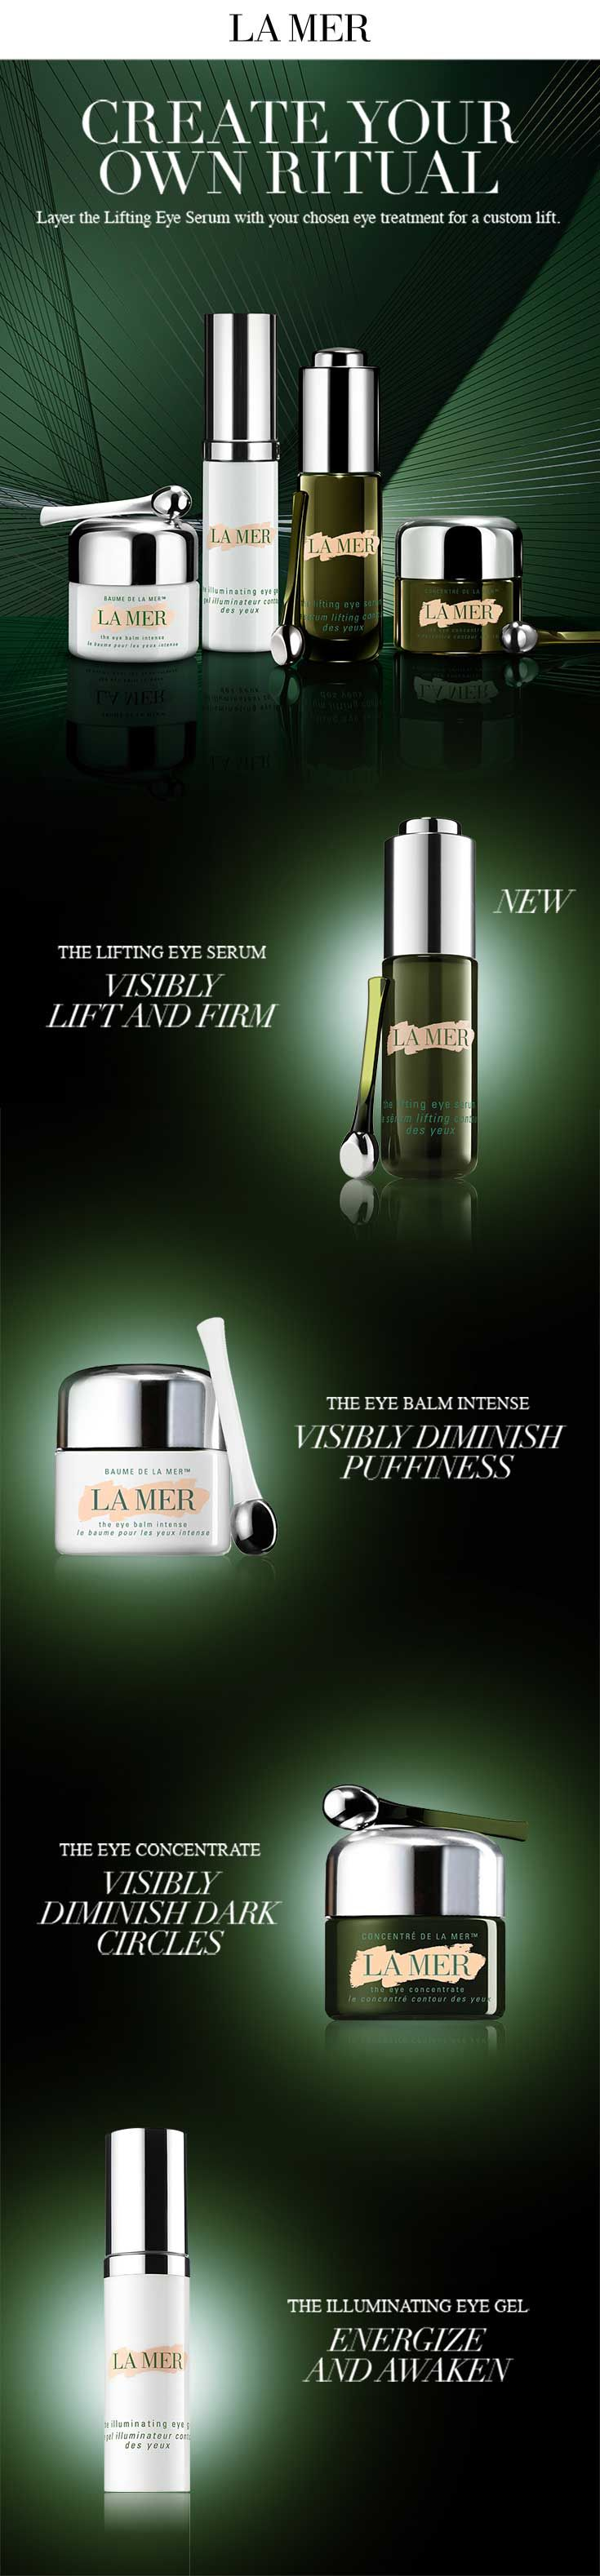 Give your eyes the luxury treatment. From instant lifts, to lighter, brighter and wide-awake eyes. Discover La Mer Eye Treatments. http://LaMer.co/EyeTreatment